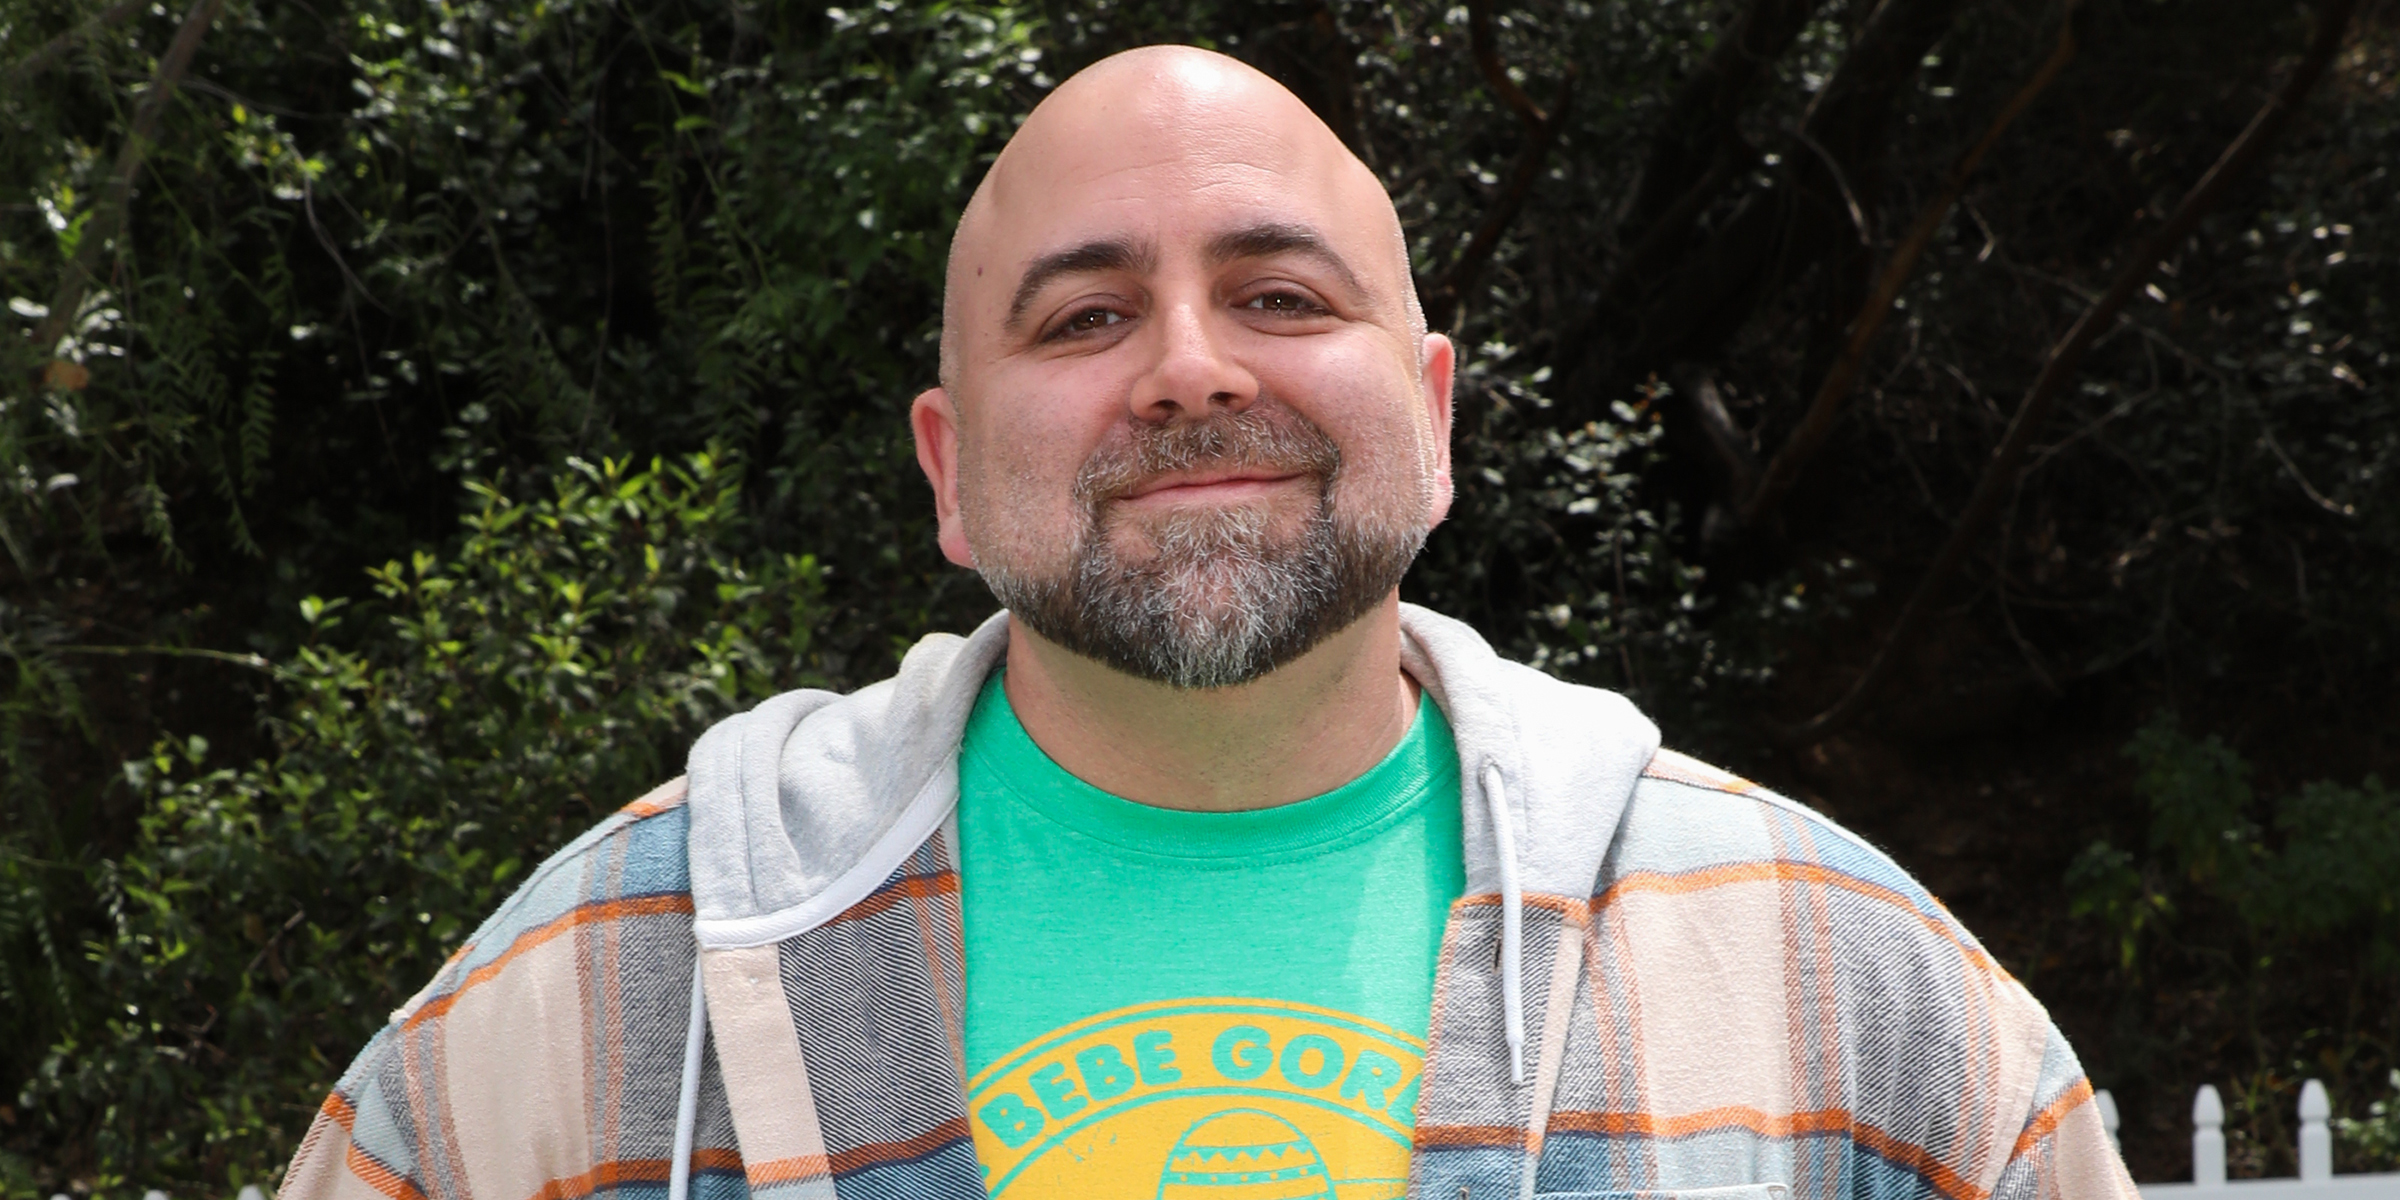 Duff Goldman shares how to make one his signature cakes